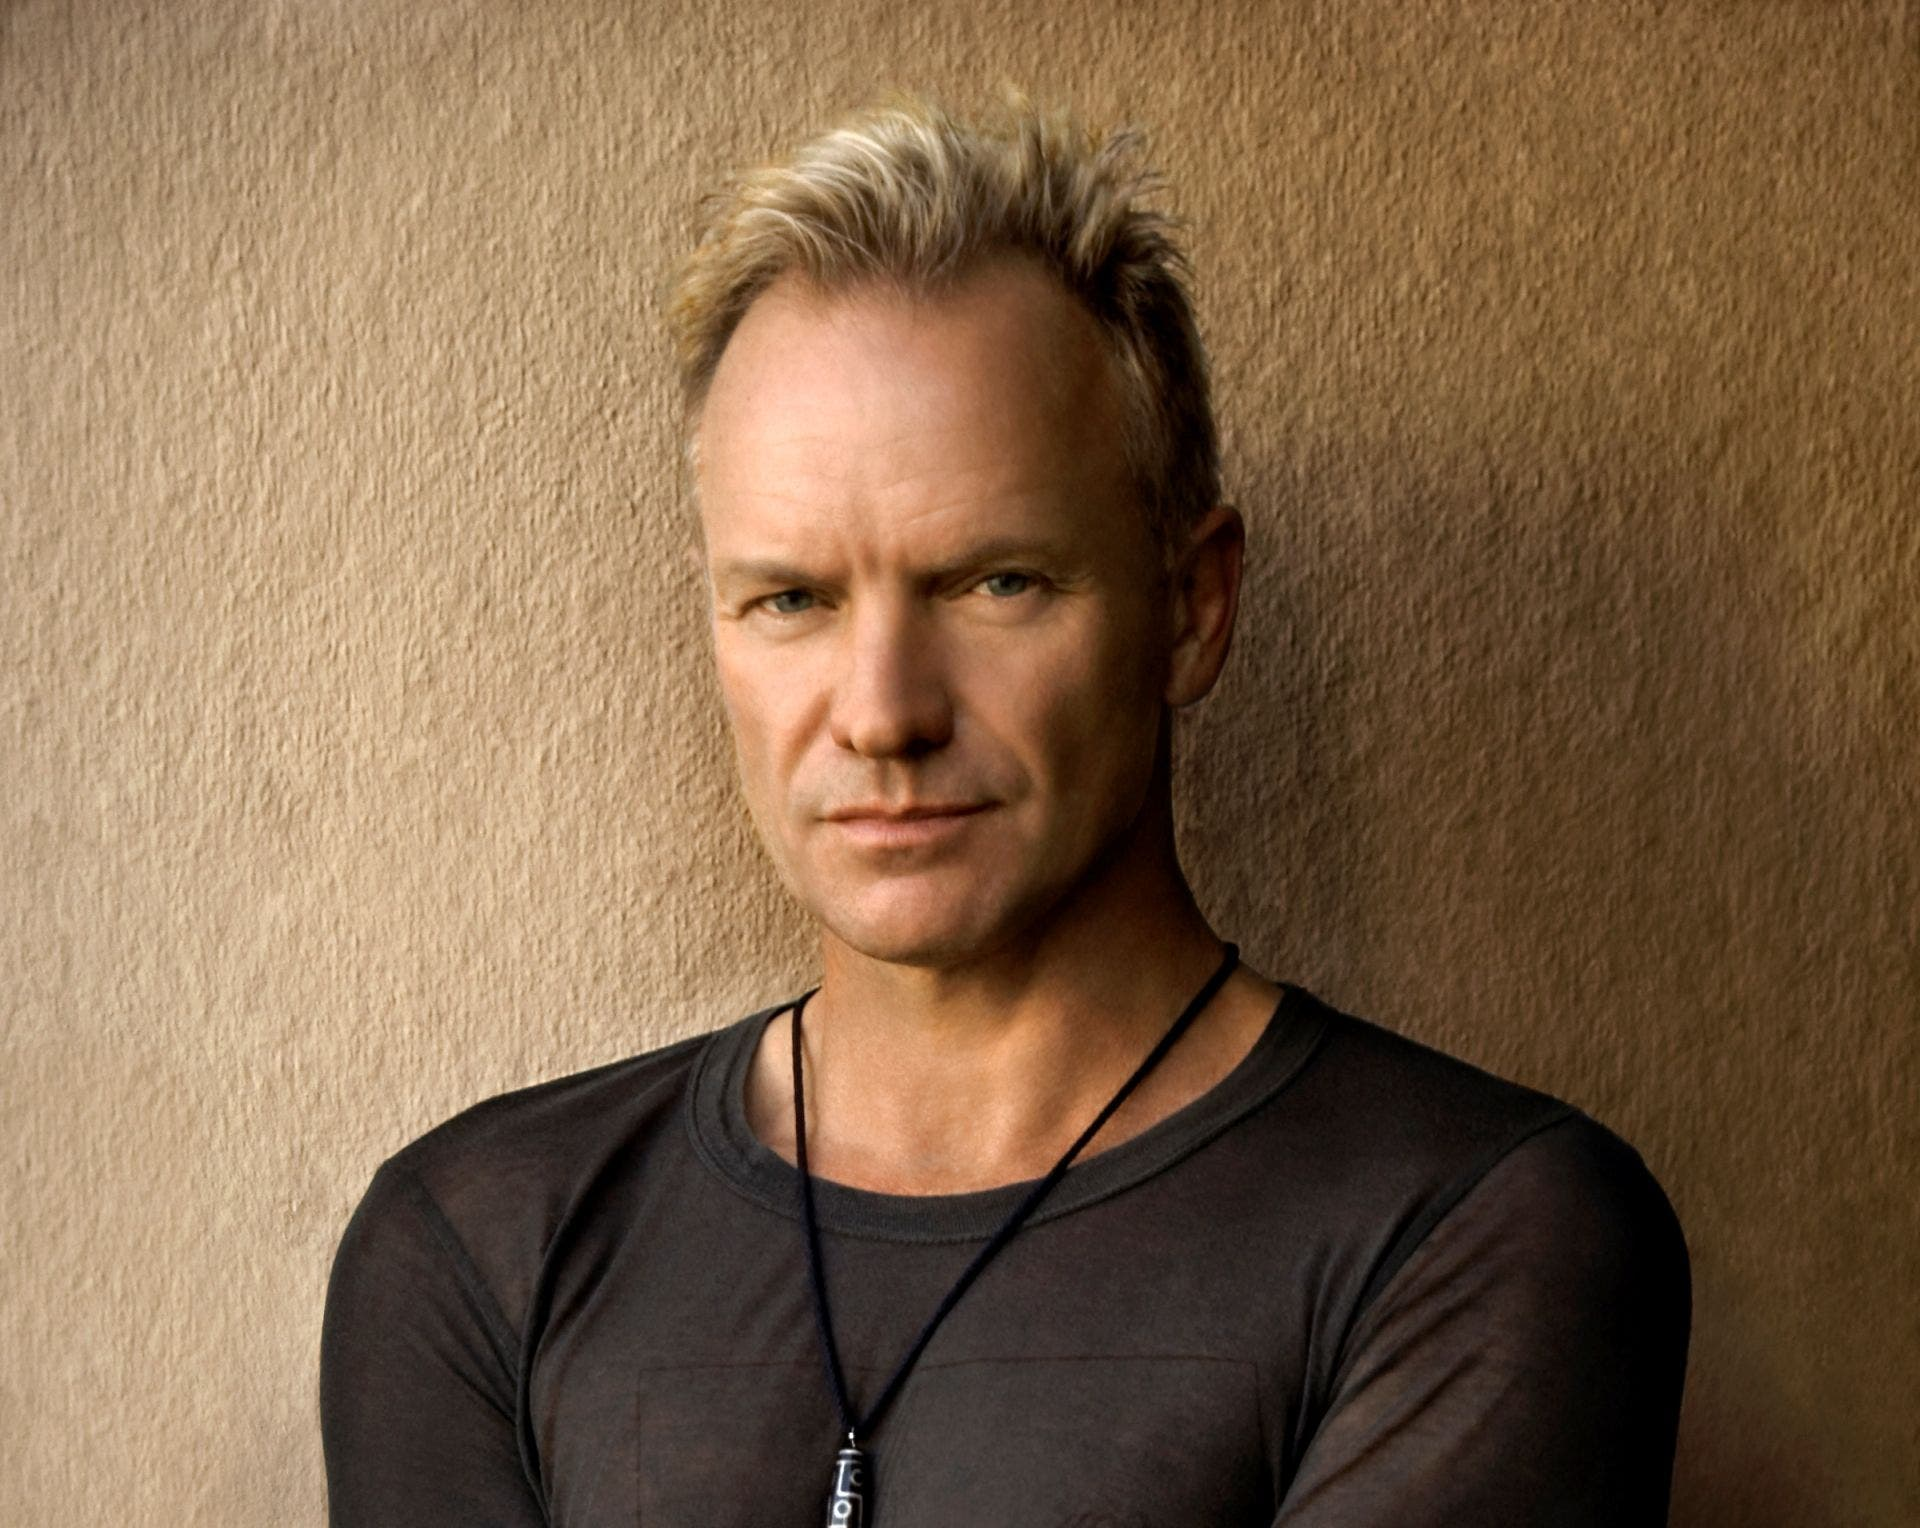 Sting is hitting Abu Dhabi as part of his Back on Bass tour